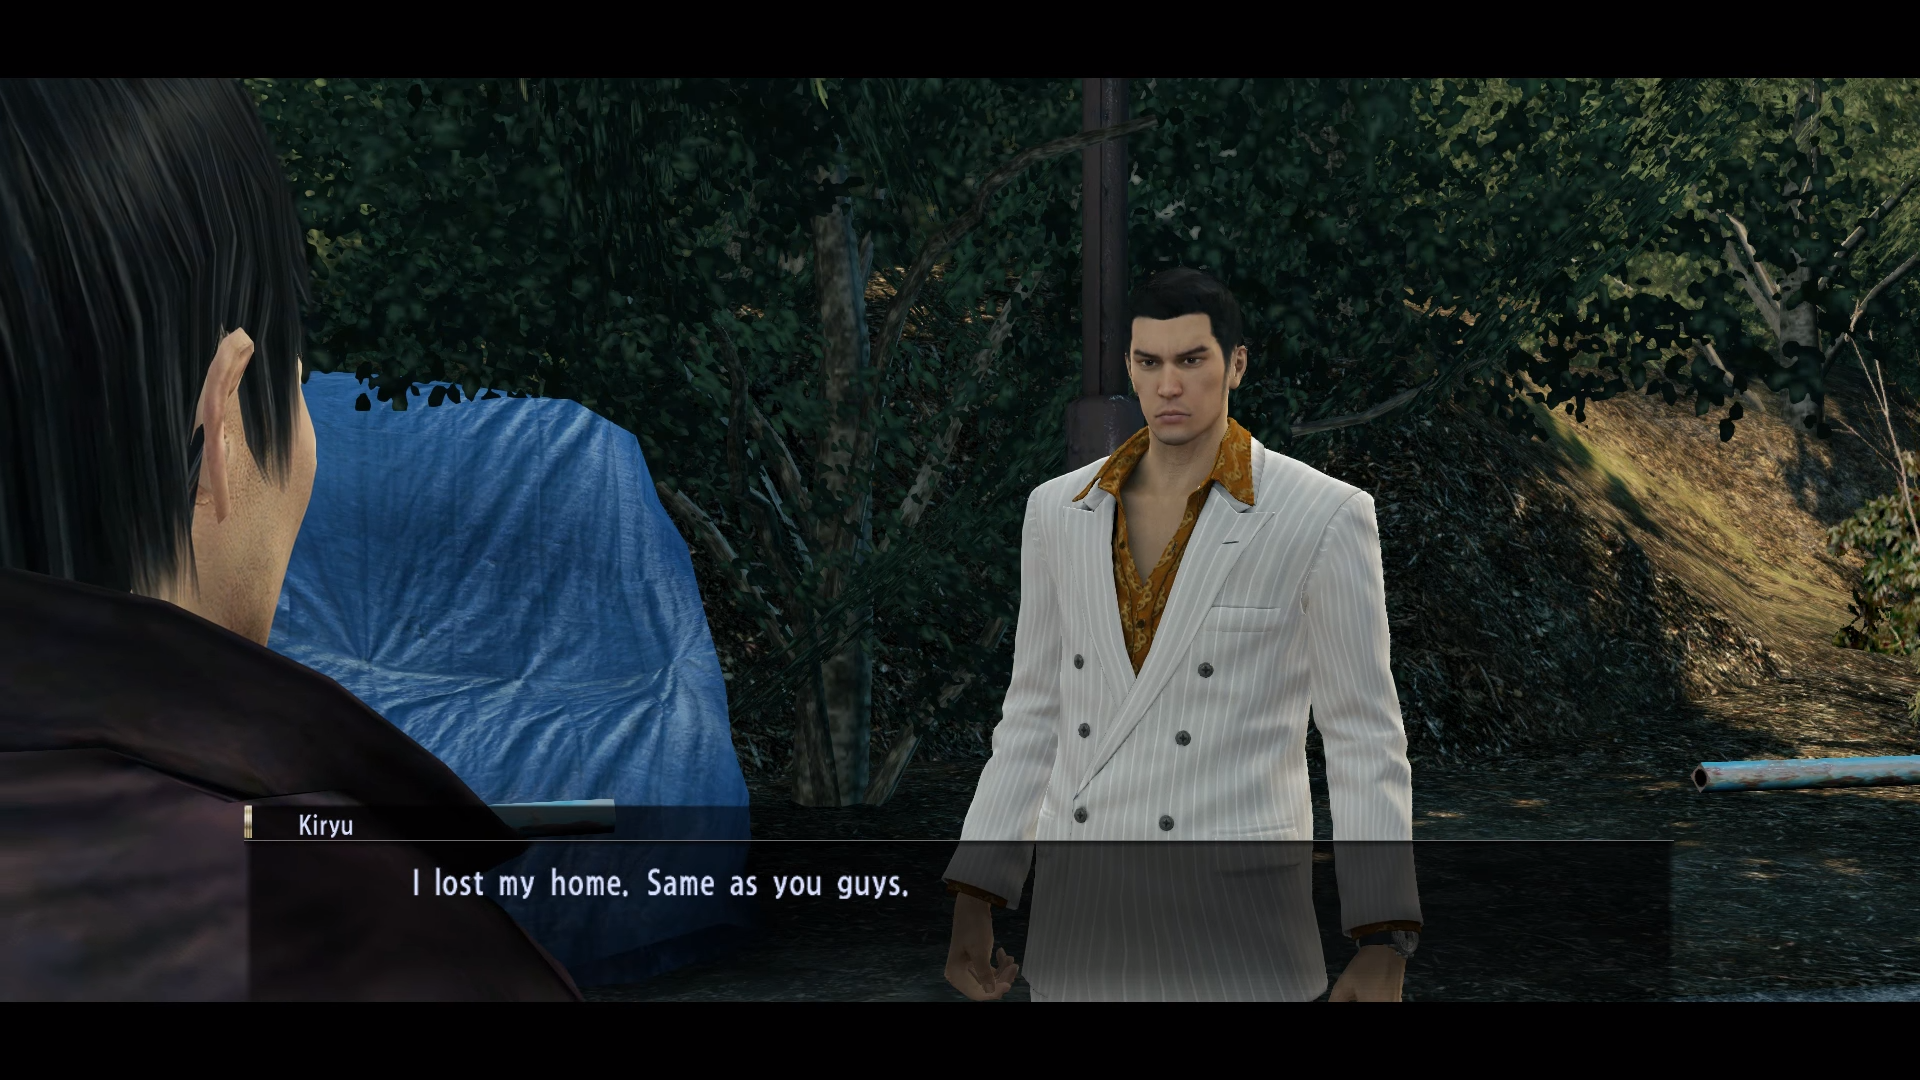 The Yakuza Series Treats The Homeless With Empathy And Respect